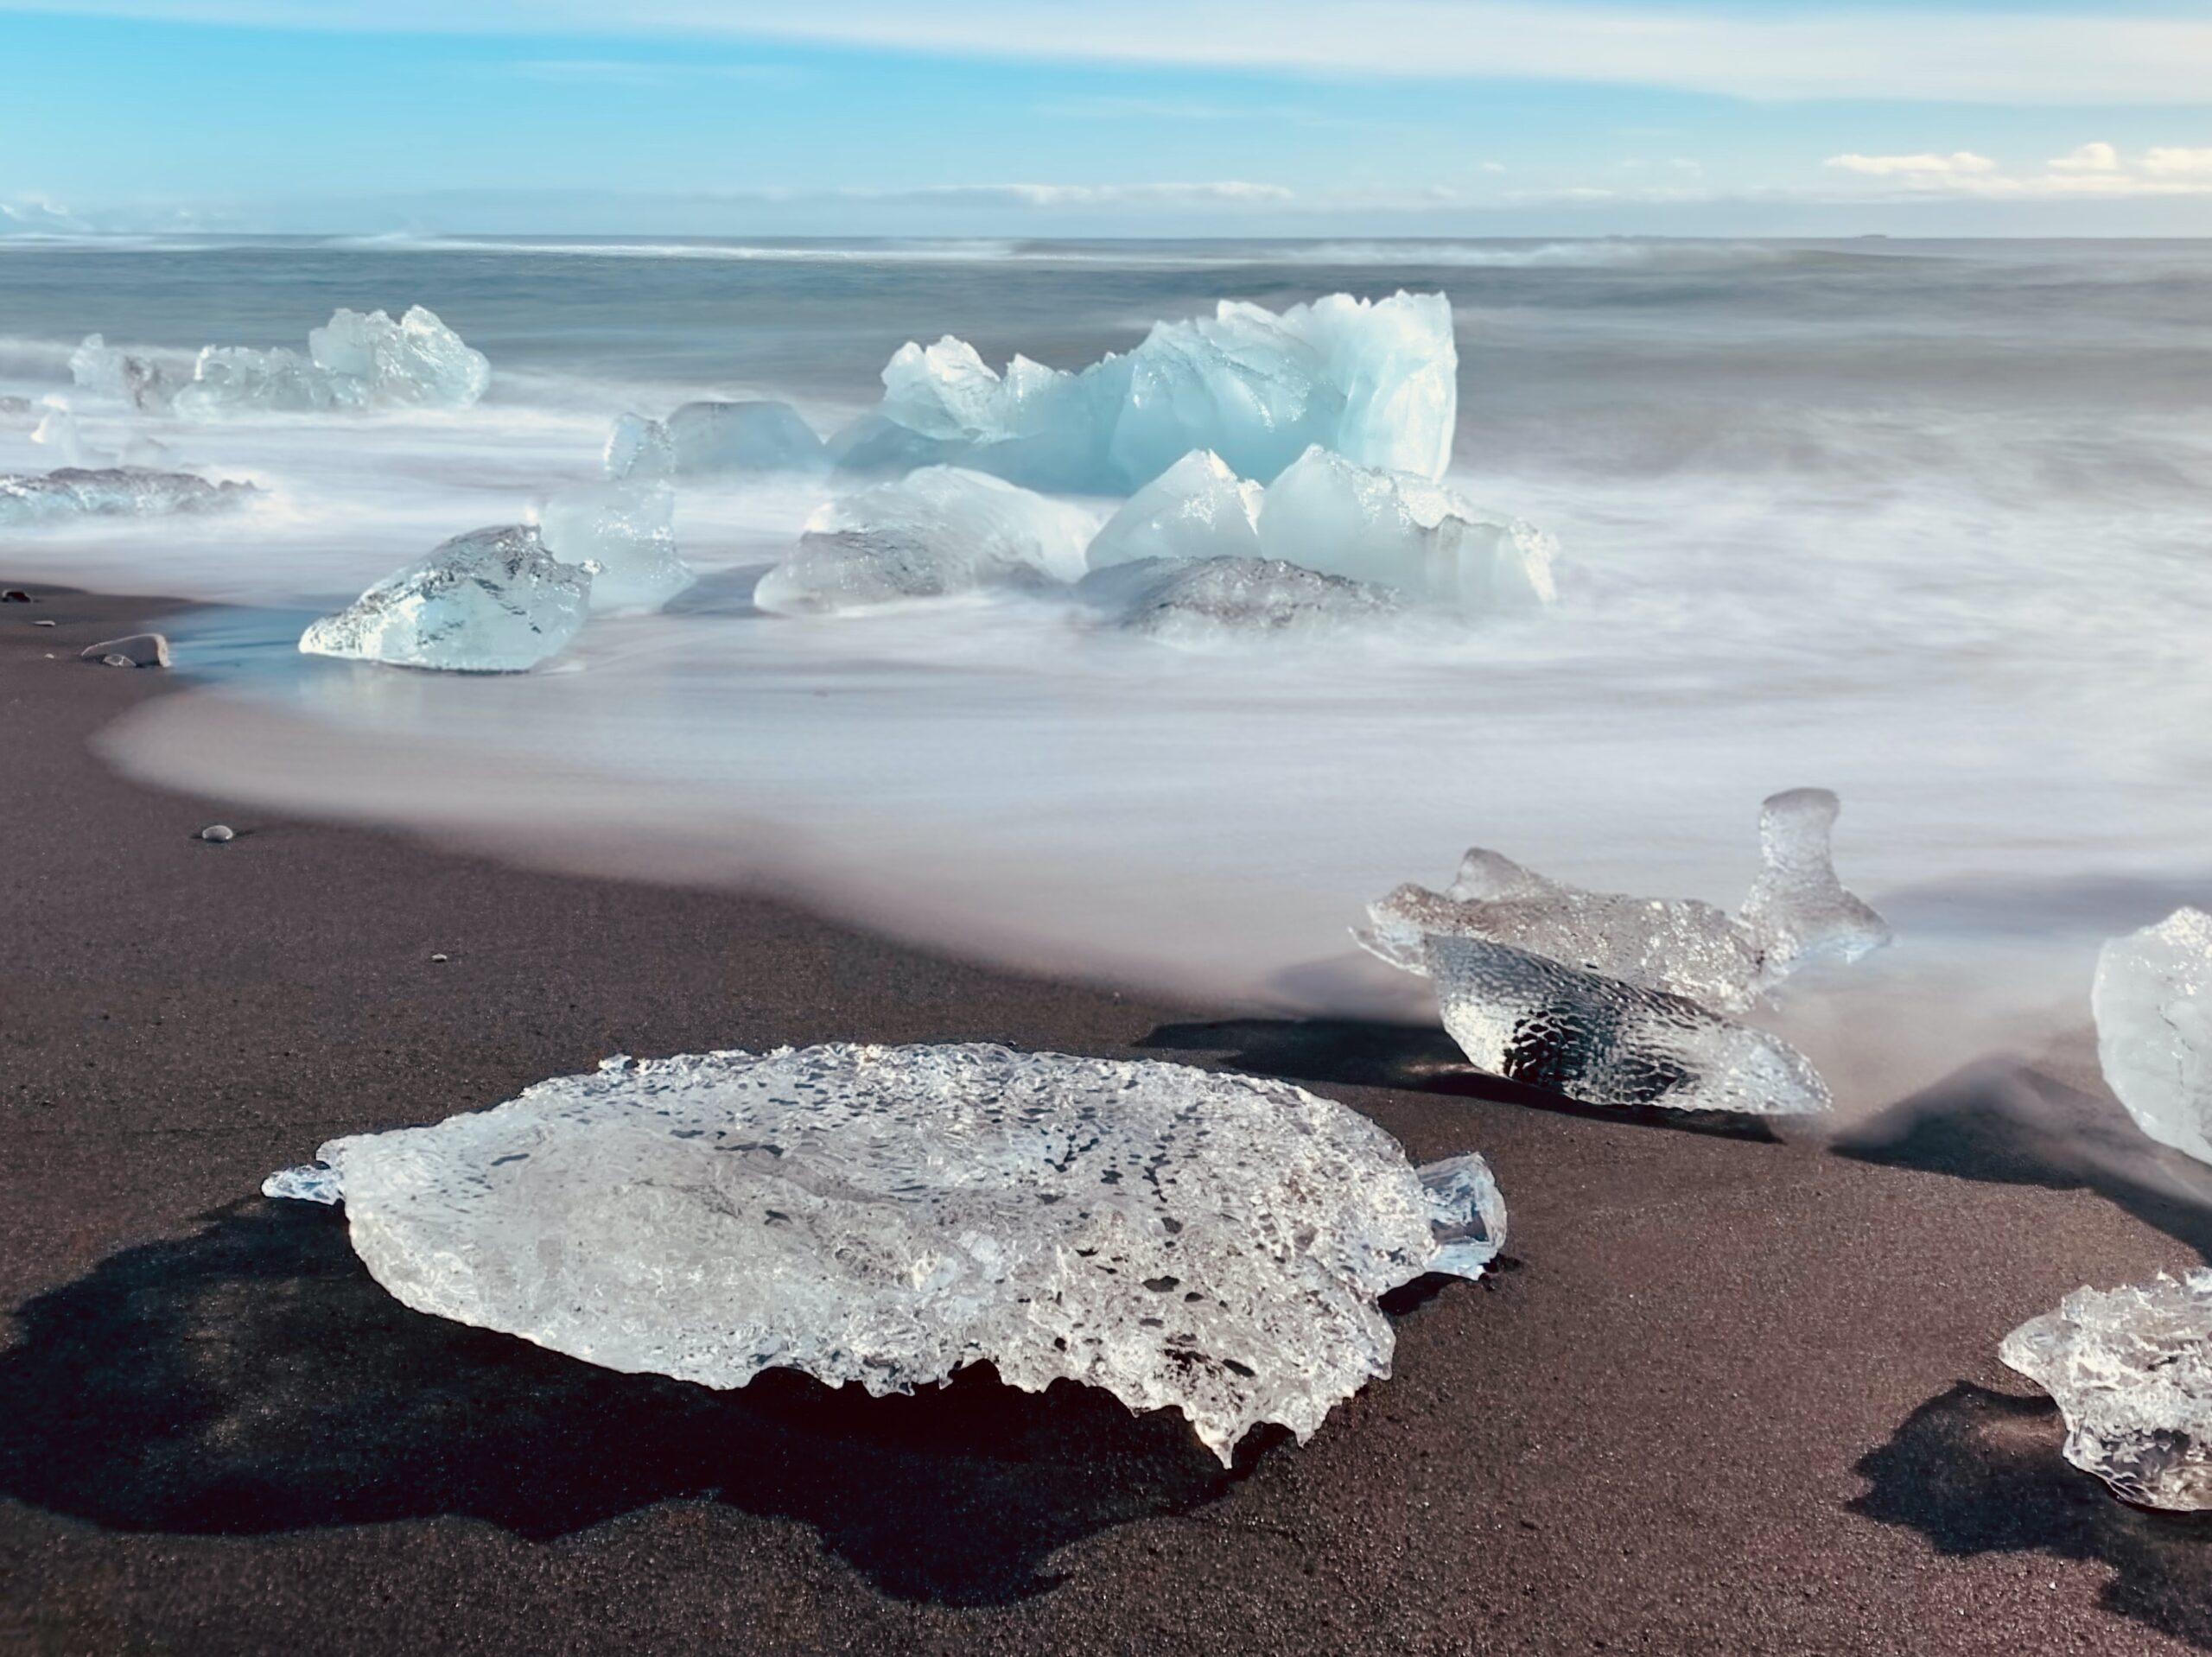 Other Worldly Landscapes Abound On Our 5 Day Golden Circle, Jökulsárlón & Blue Lagoon Tour Package